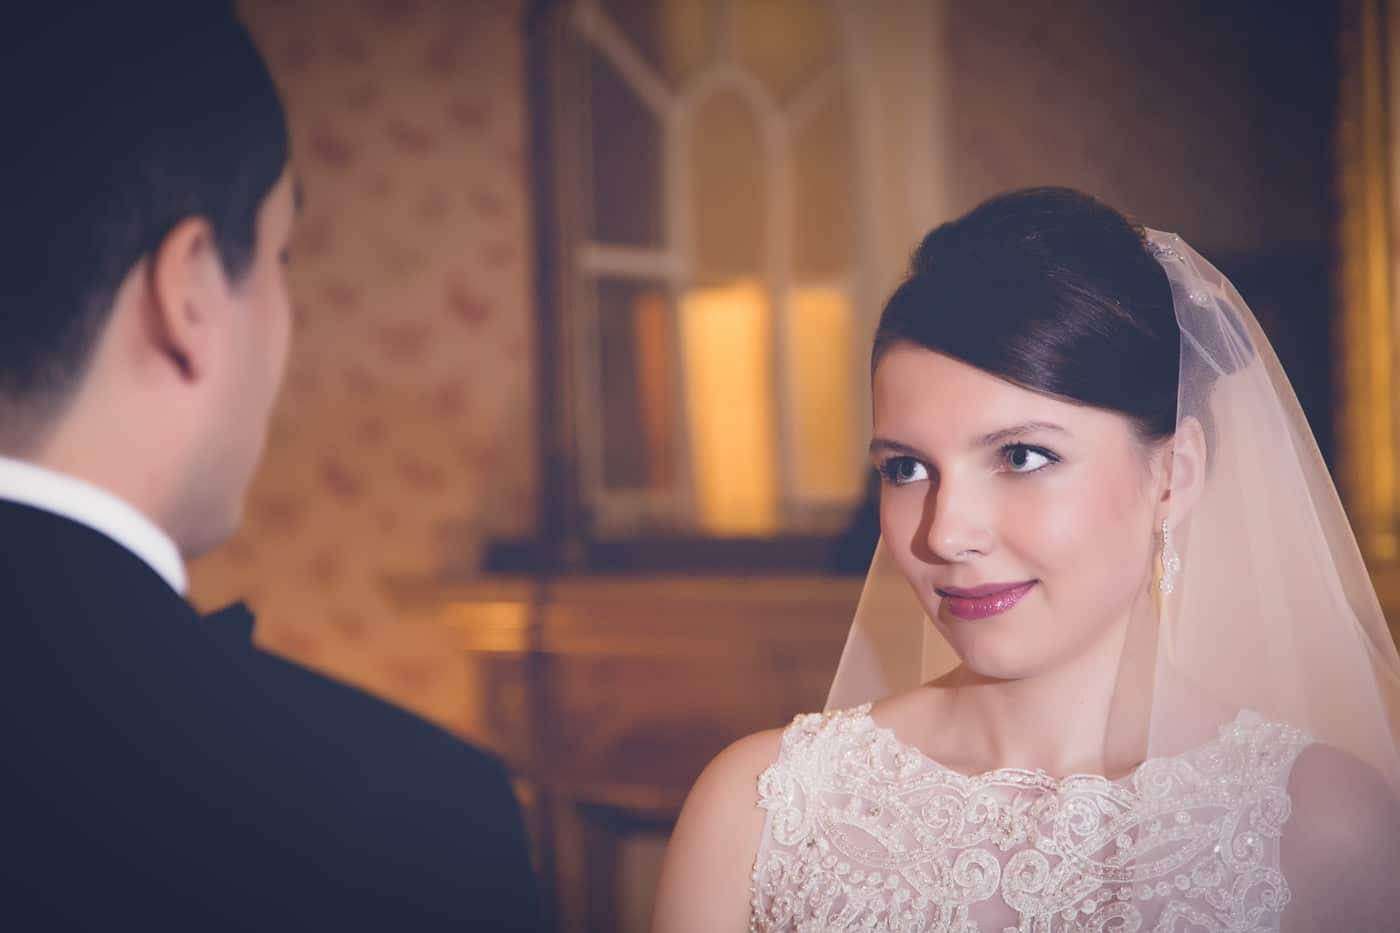 The bride is emotionally looking at her groom during the ceremony